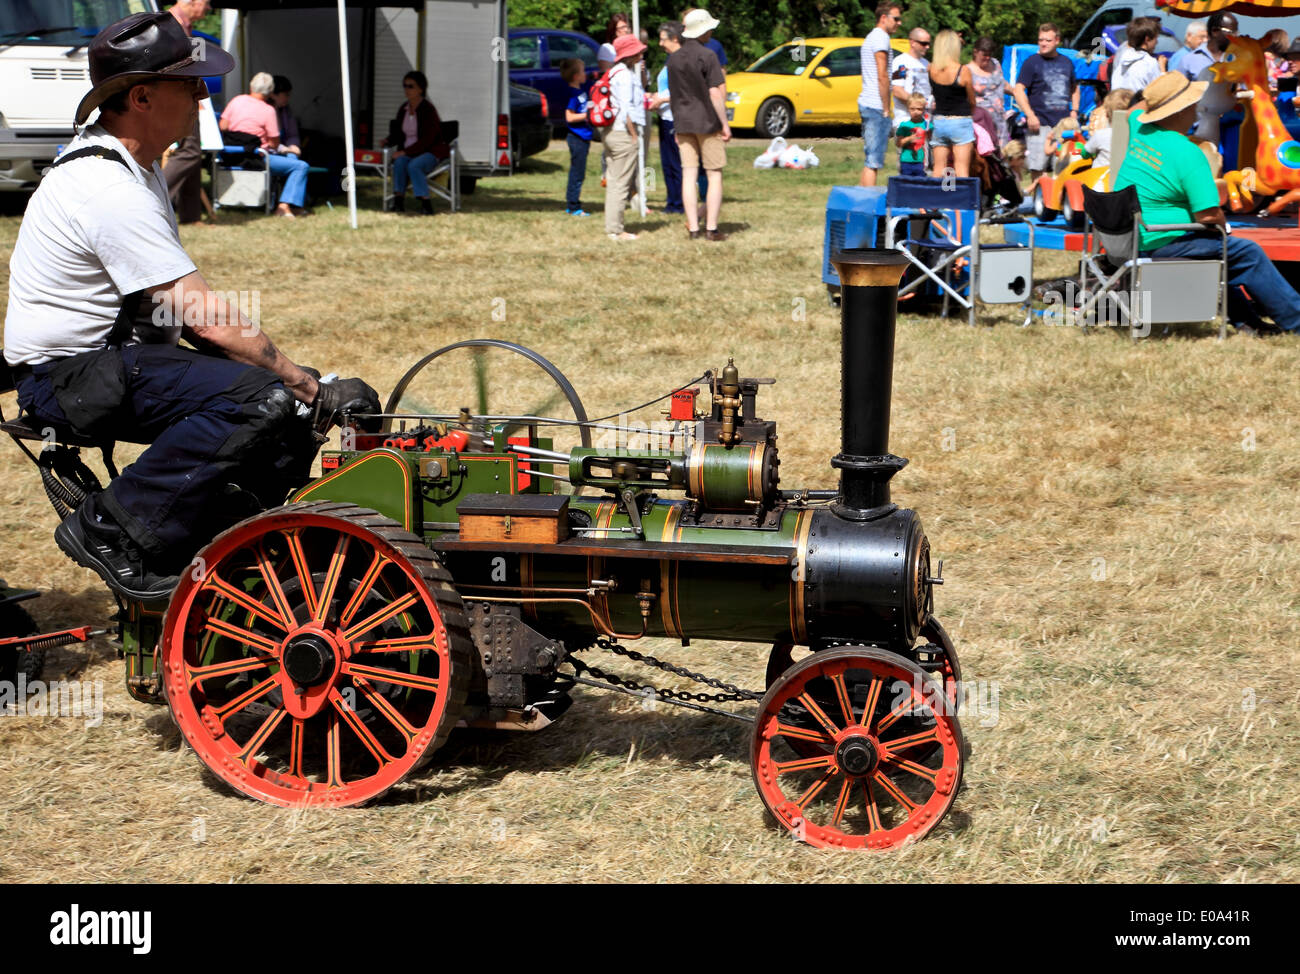 9405. Traction Engine miniature Rally, Fordwich, Kent, England - Stock Image